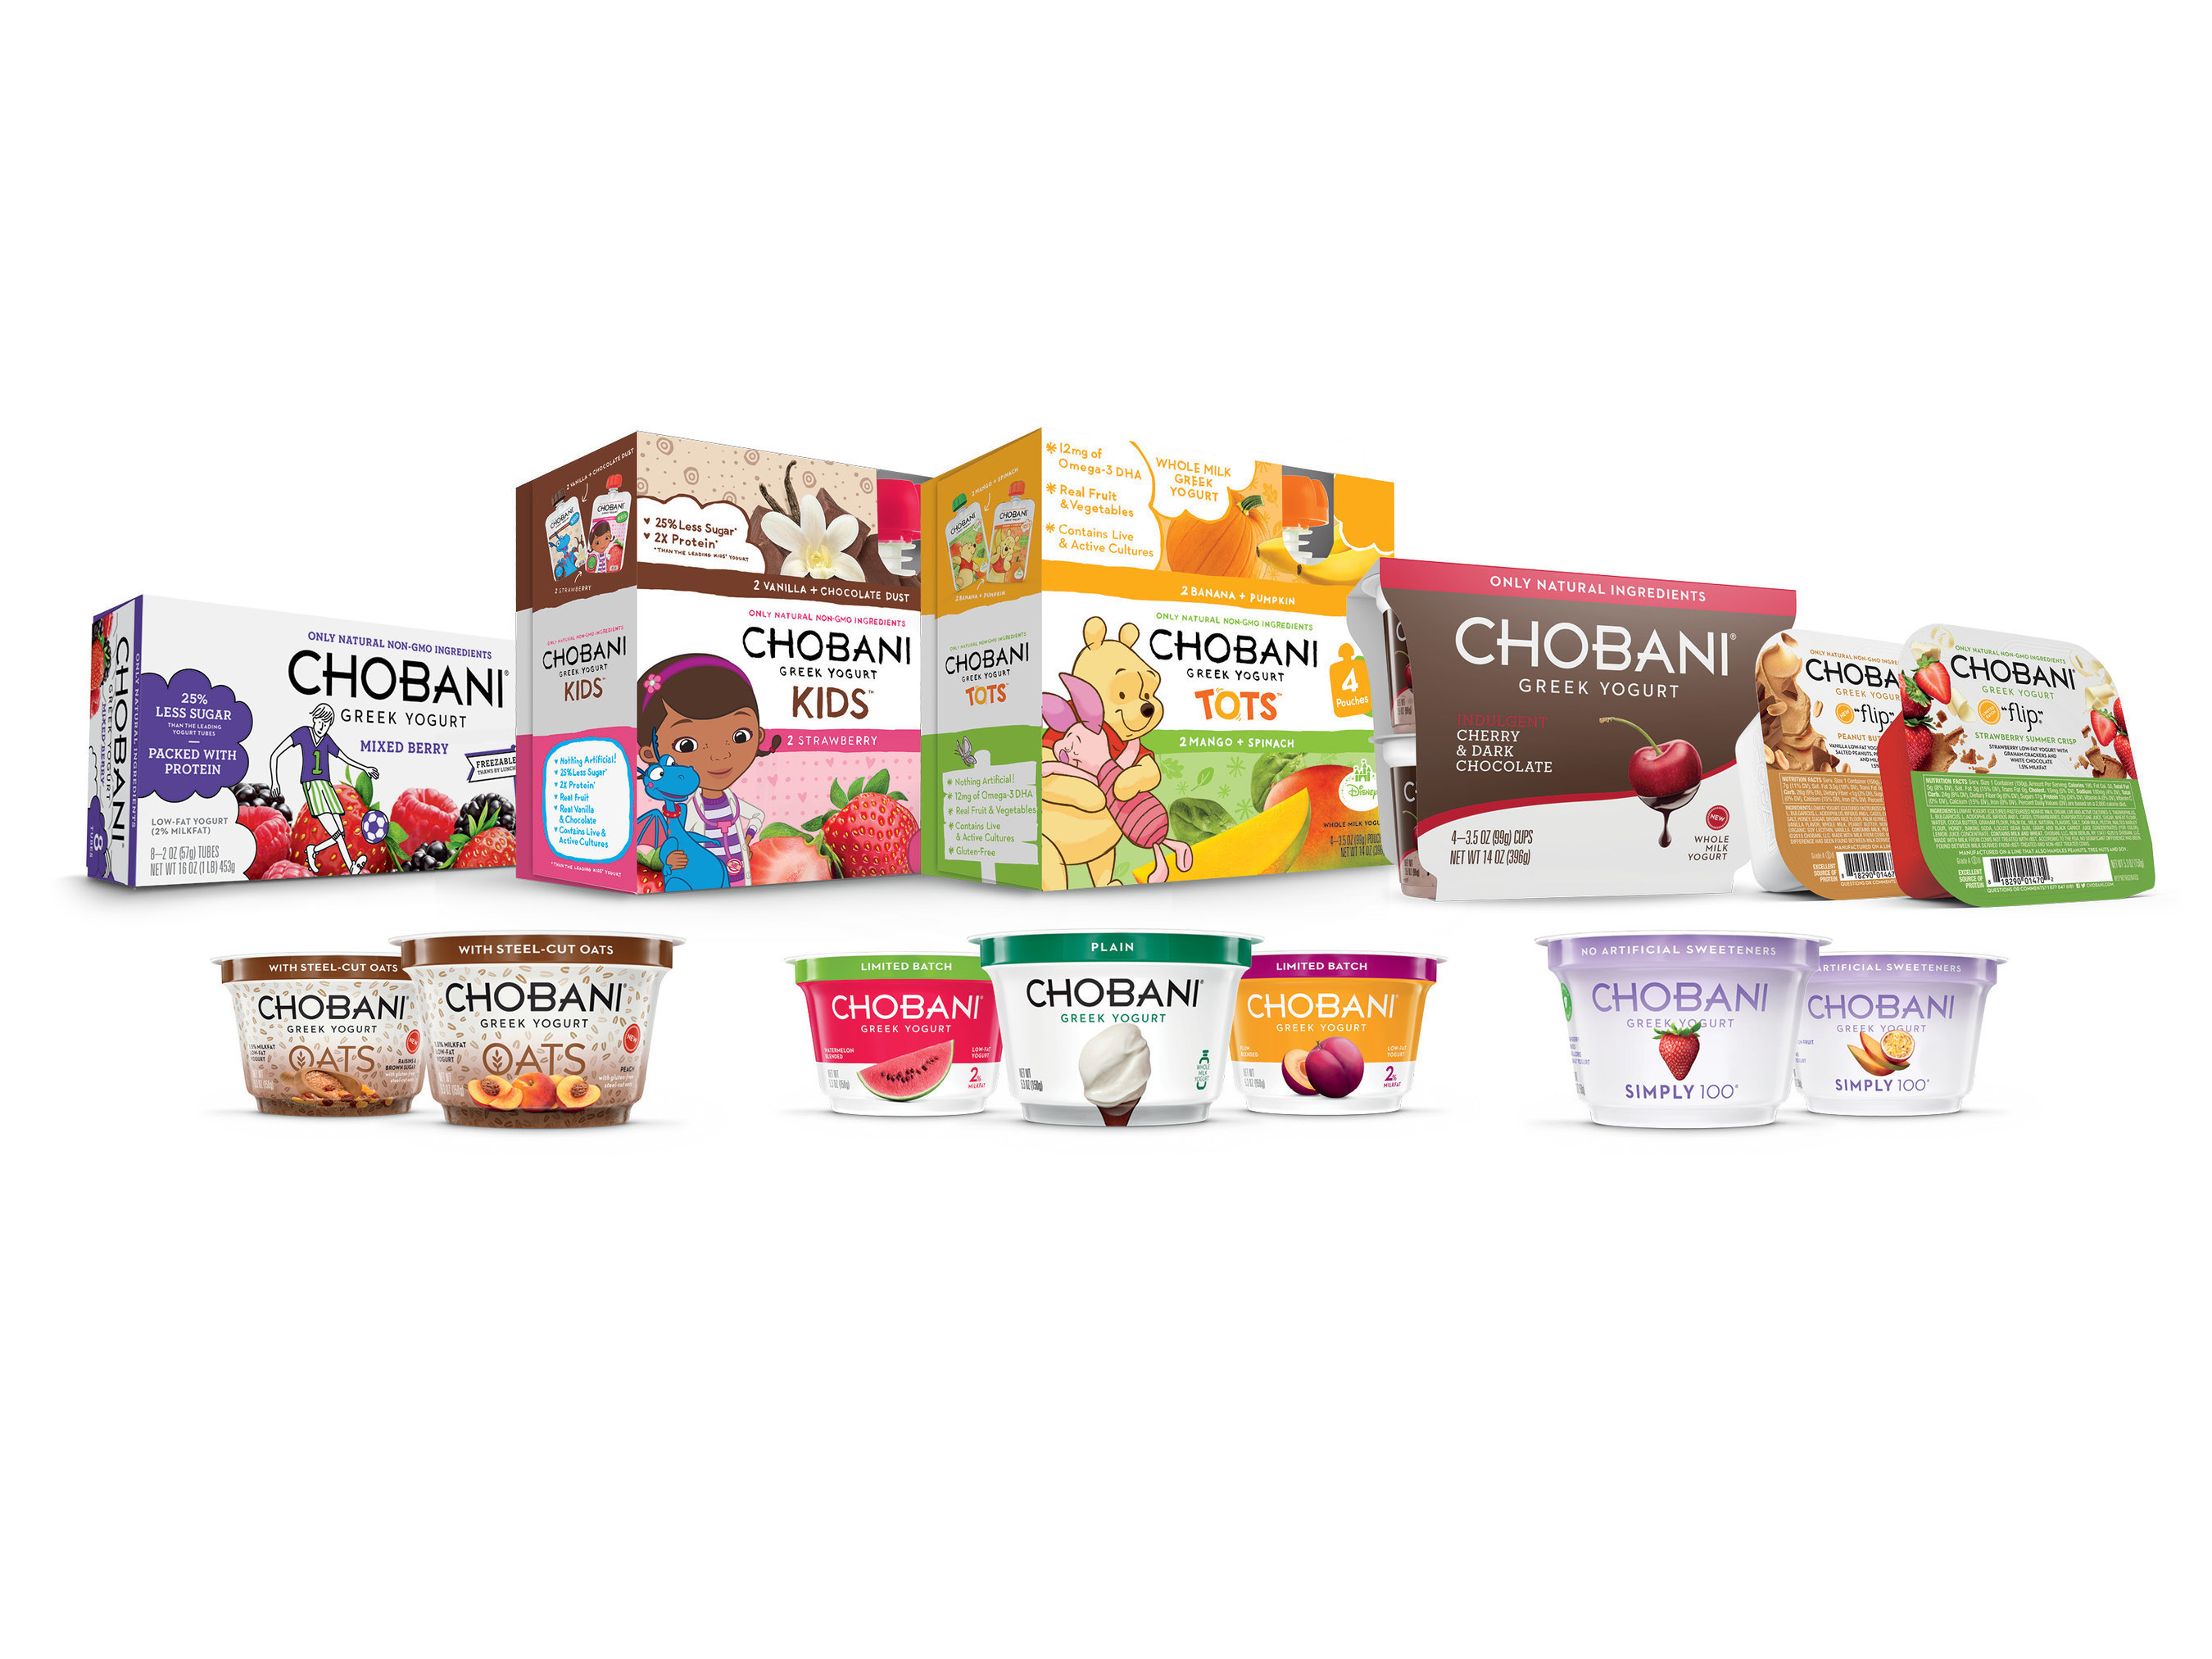 Chobani, America's No. 1-selling Greek Yogurt brand, announces new products across its entire portfolio-including new Chobani Oats, Chobani Simply 100, Chobani Flip, Limited Batch Chobani Greek Yogurt, Chobani Kids Greek Yogurt Tubes and Chobani Indulgent.